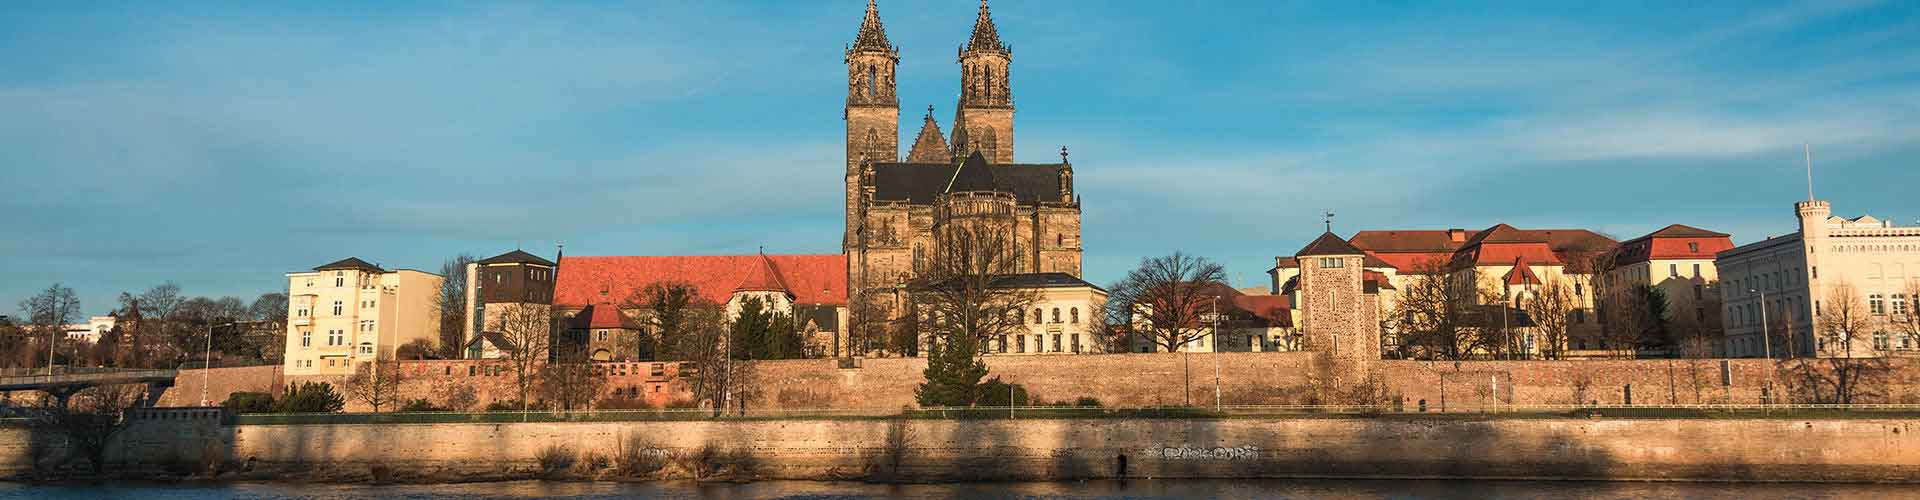 Magdeburg – Hostels in Magdeburg. Maps for Magdeburg, Photos and Reviews for each hostel in Magdeburg.